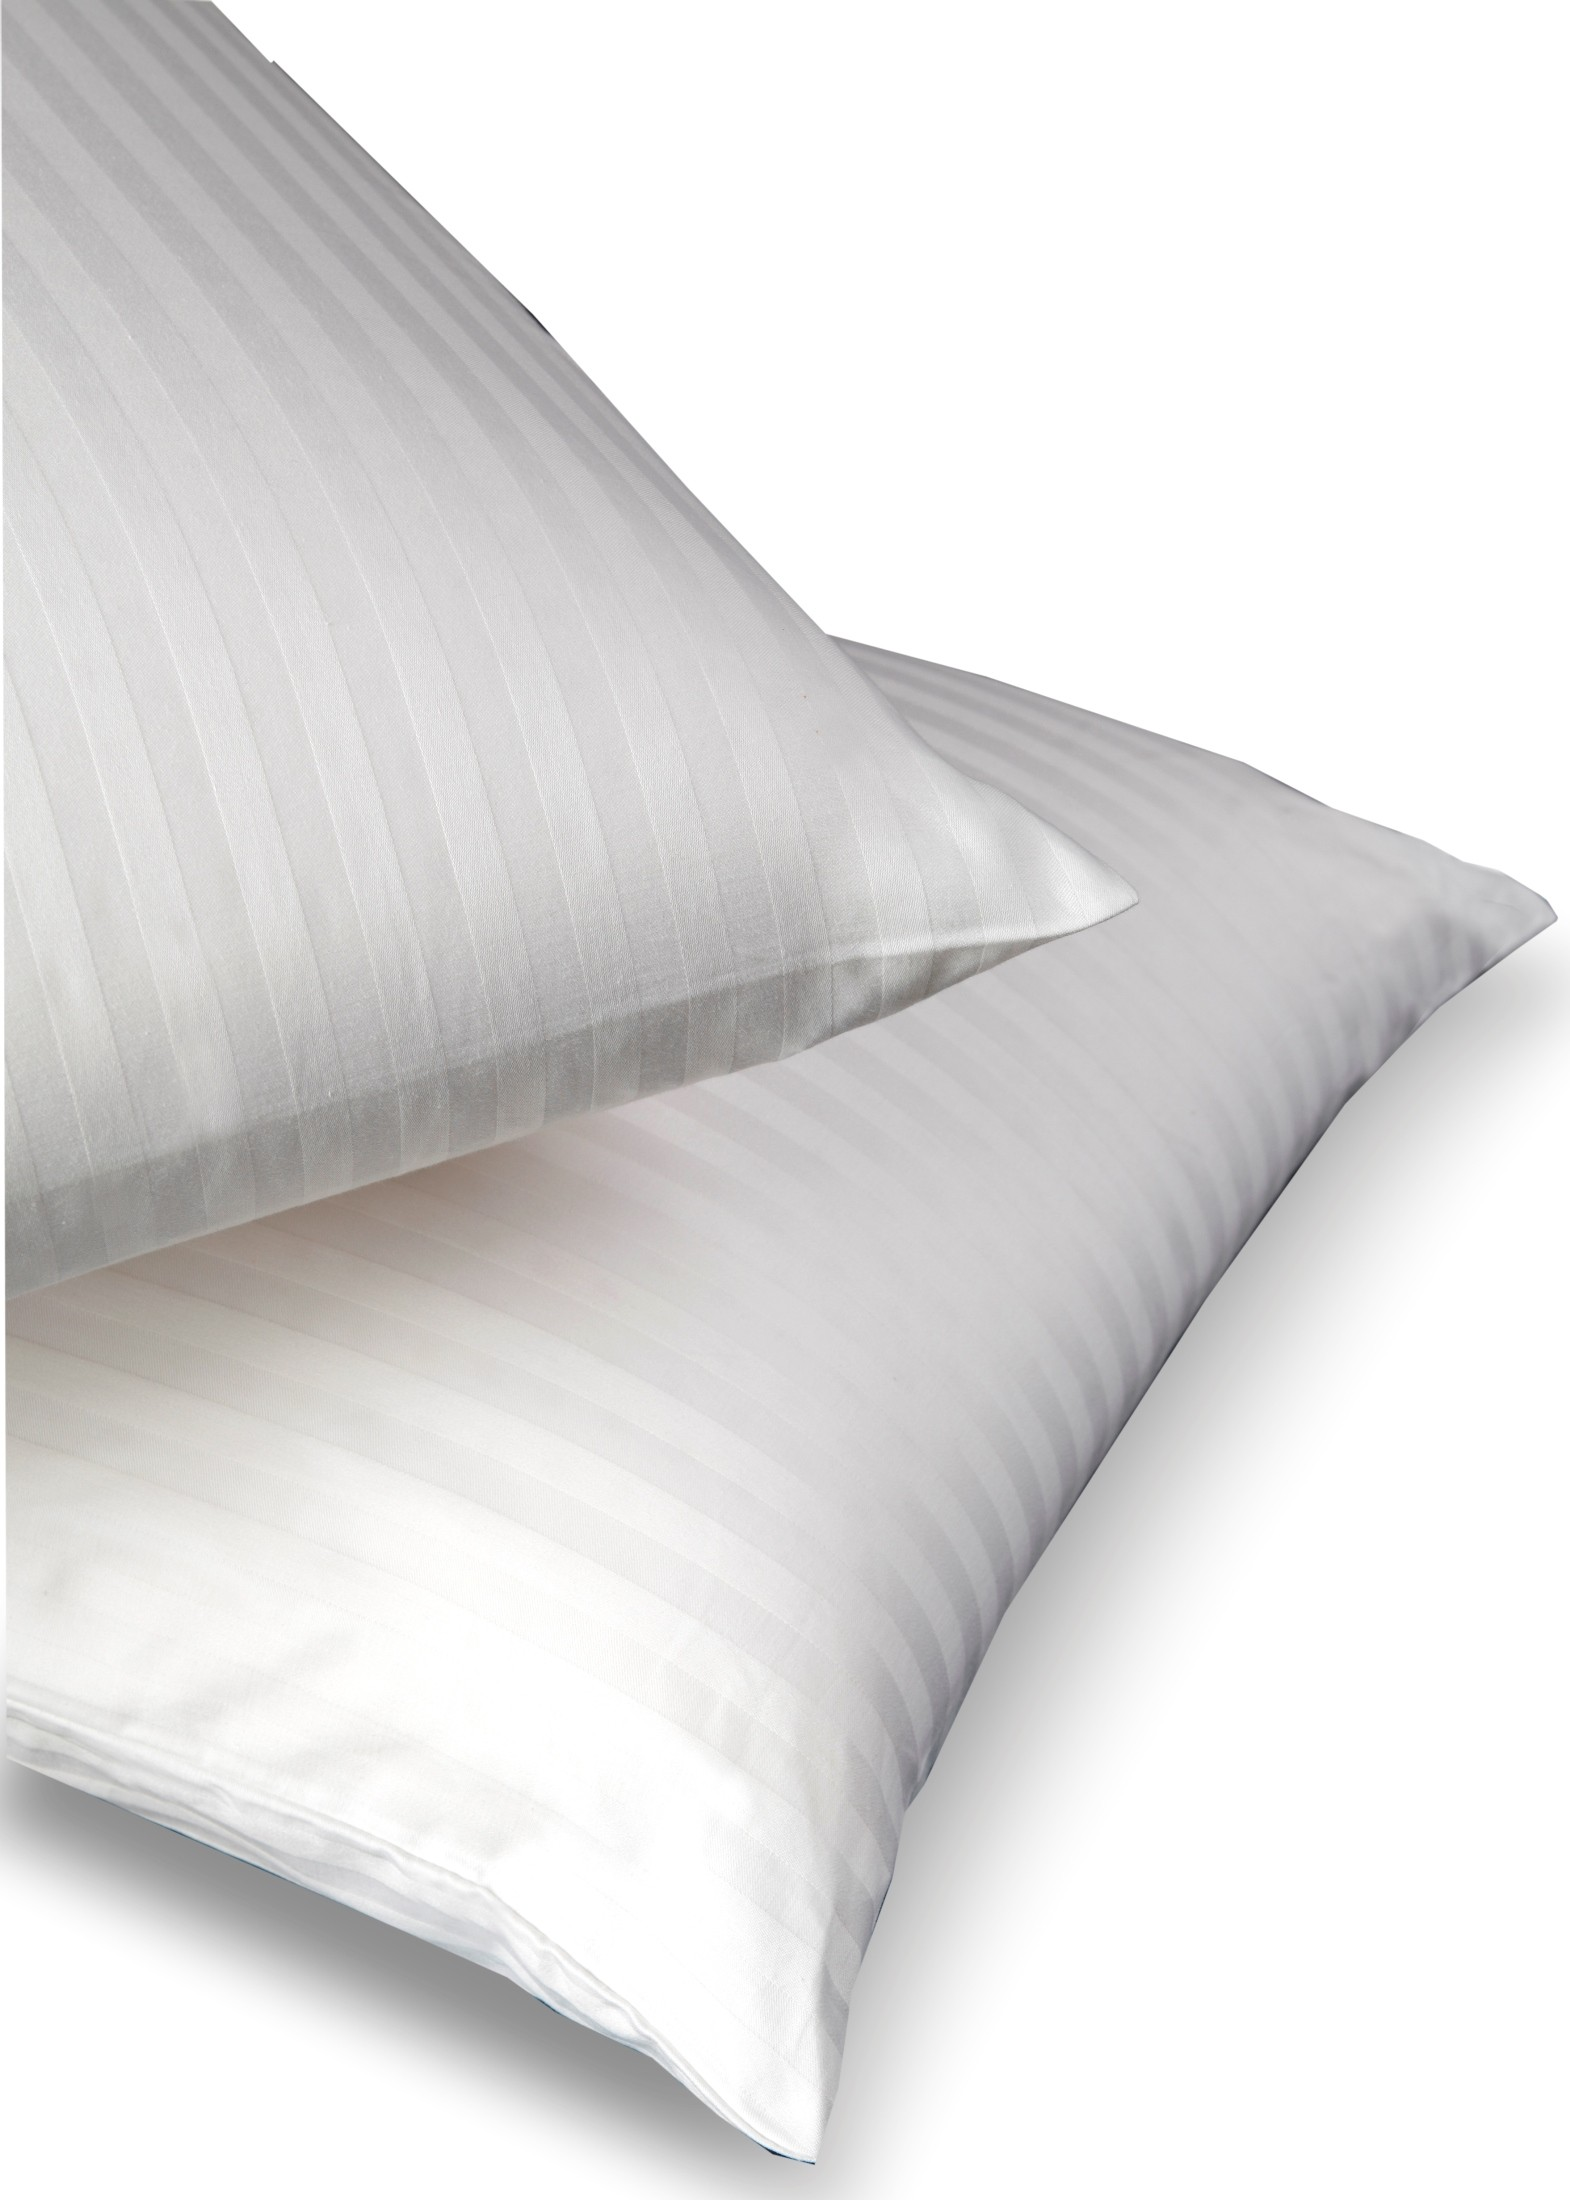 Latex Queen Size Pillow from Fashion Bed Group QG0044